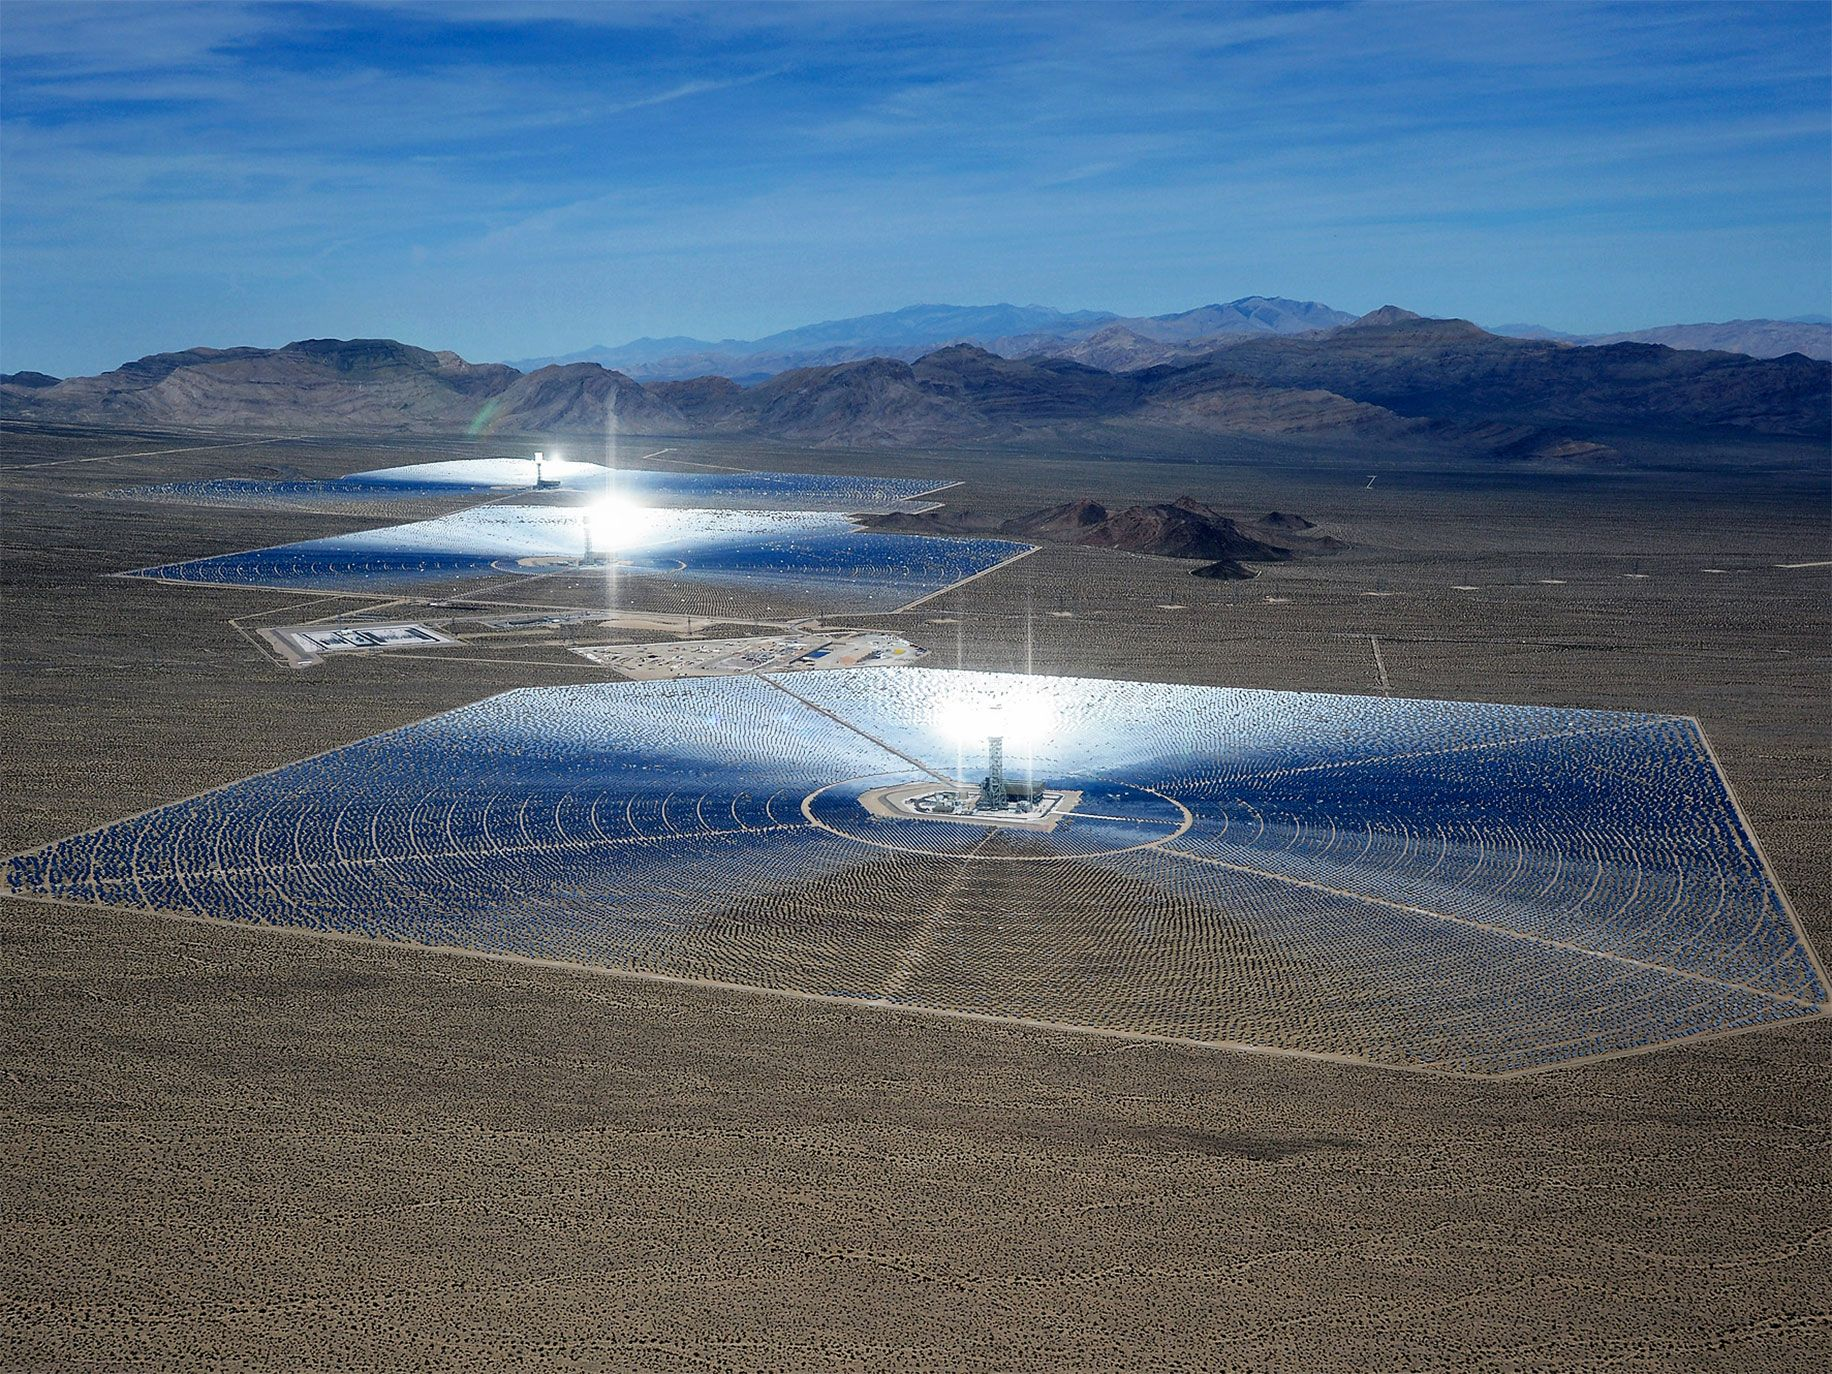 The Ivanpah Solar Electric Generating System is the largest solar thermal power-tower system in the world. Its 347,000 mirrors turn sunlight into electricity for more than 140,000 homes.